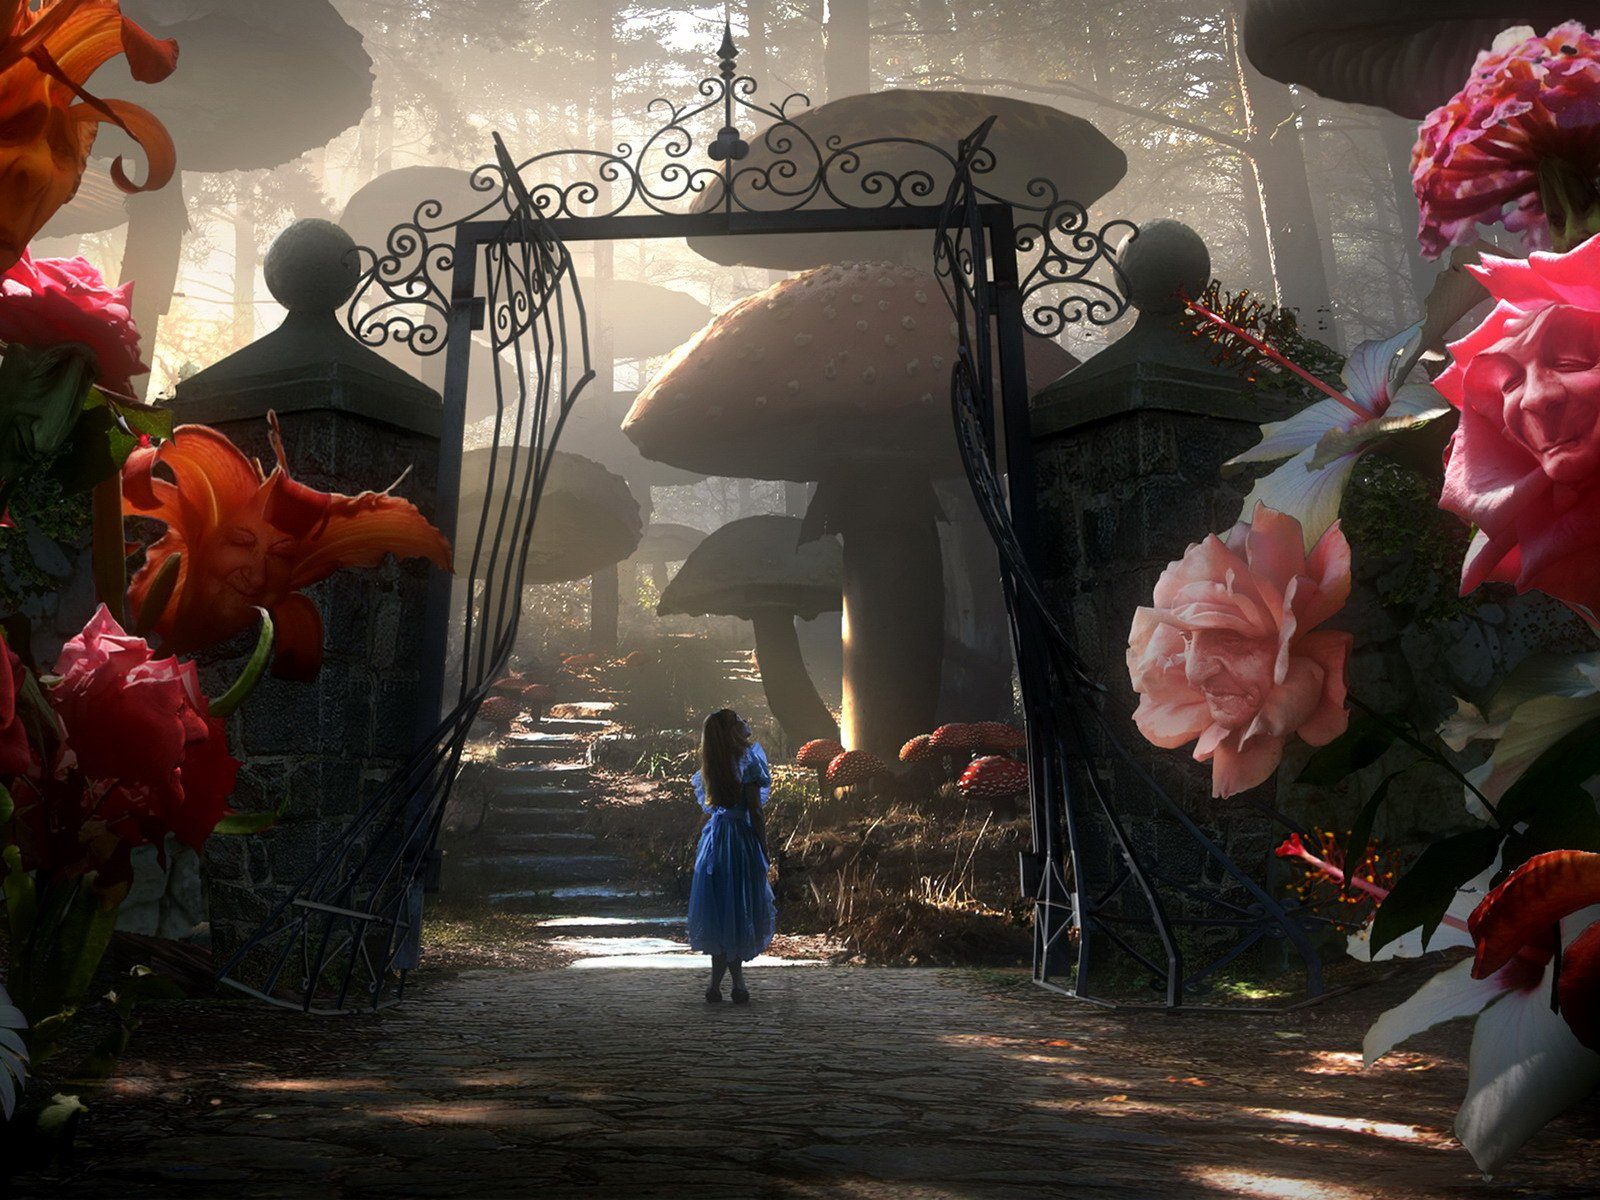 alice in wonderland wallpapers - sci-fi bloggerssci-fi bloggers